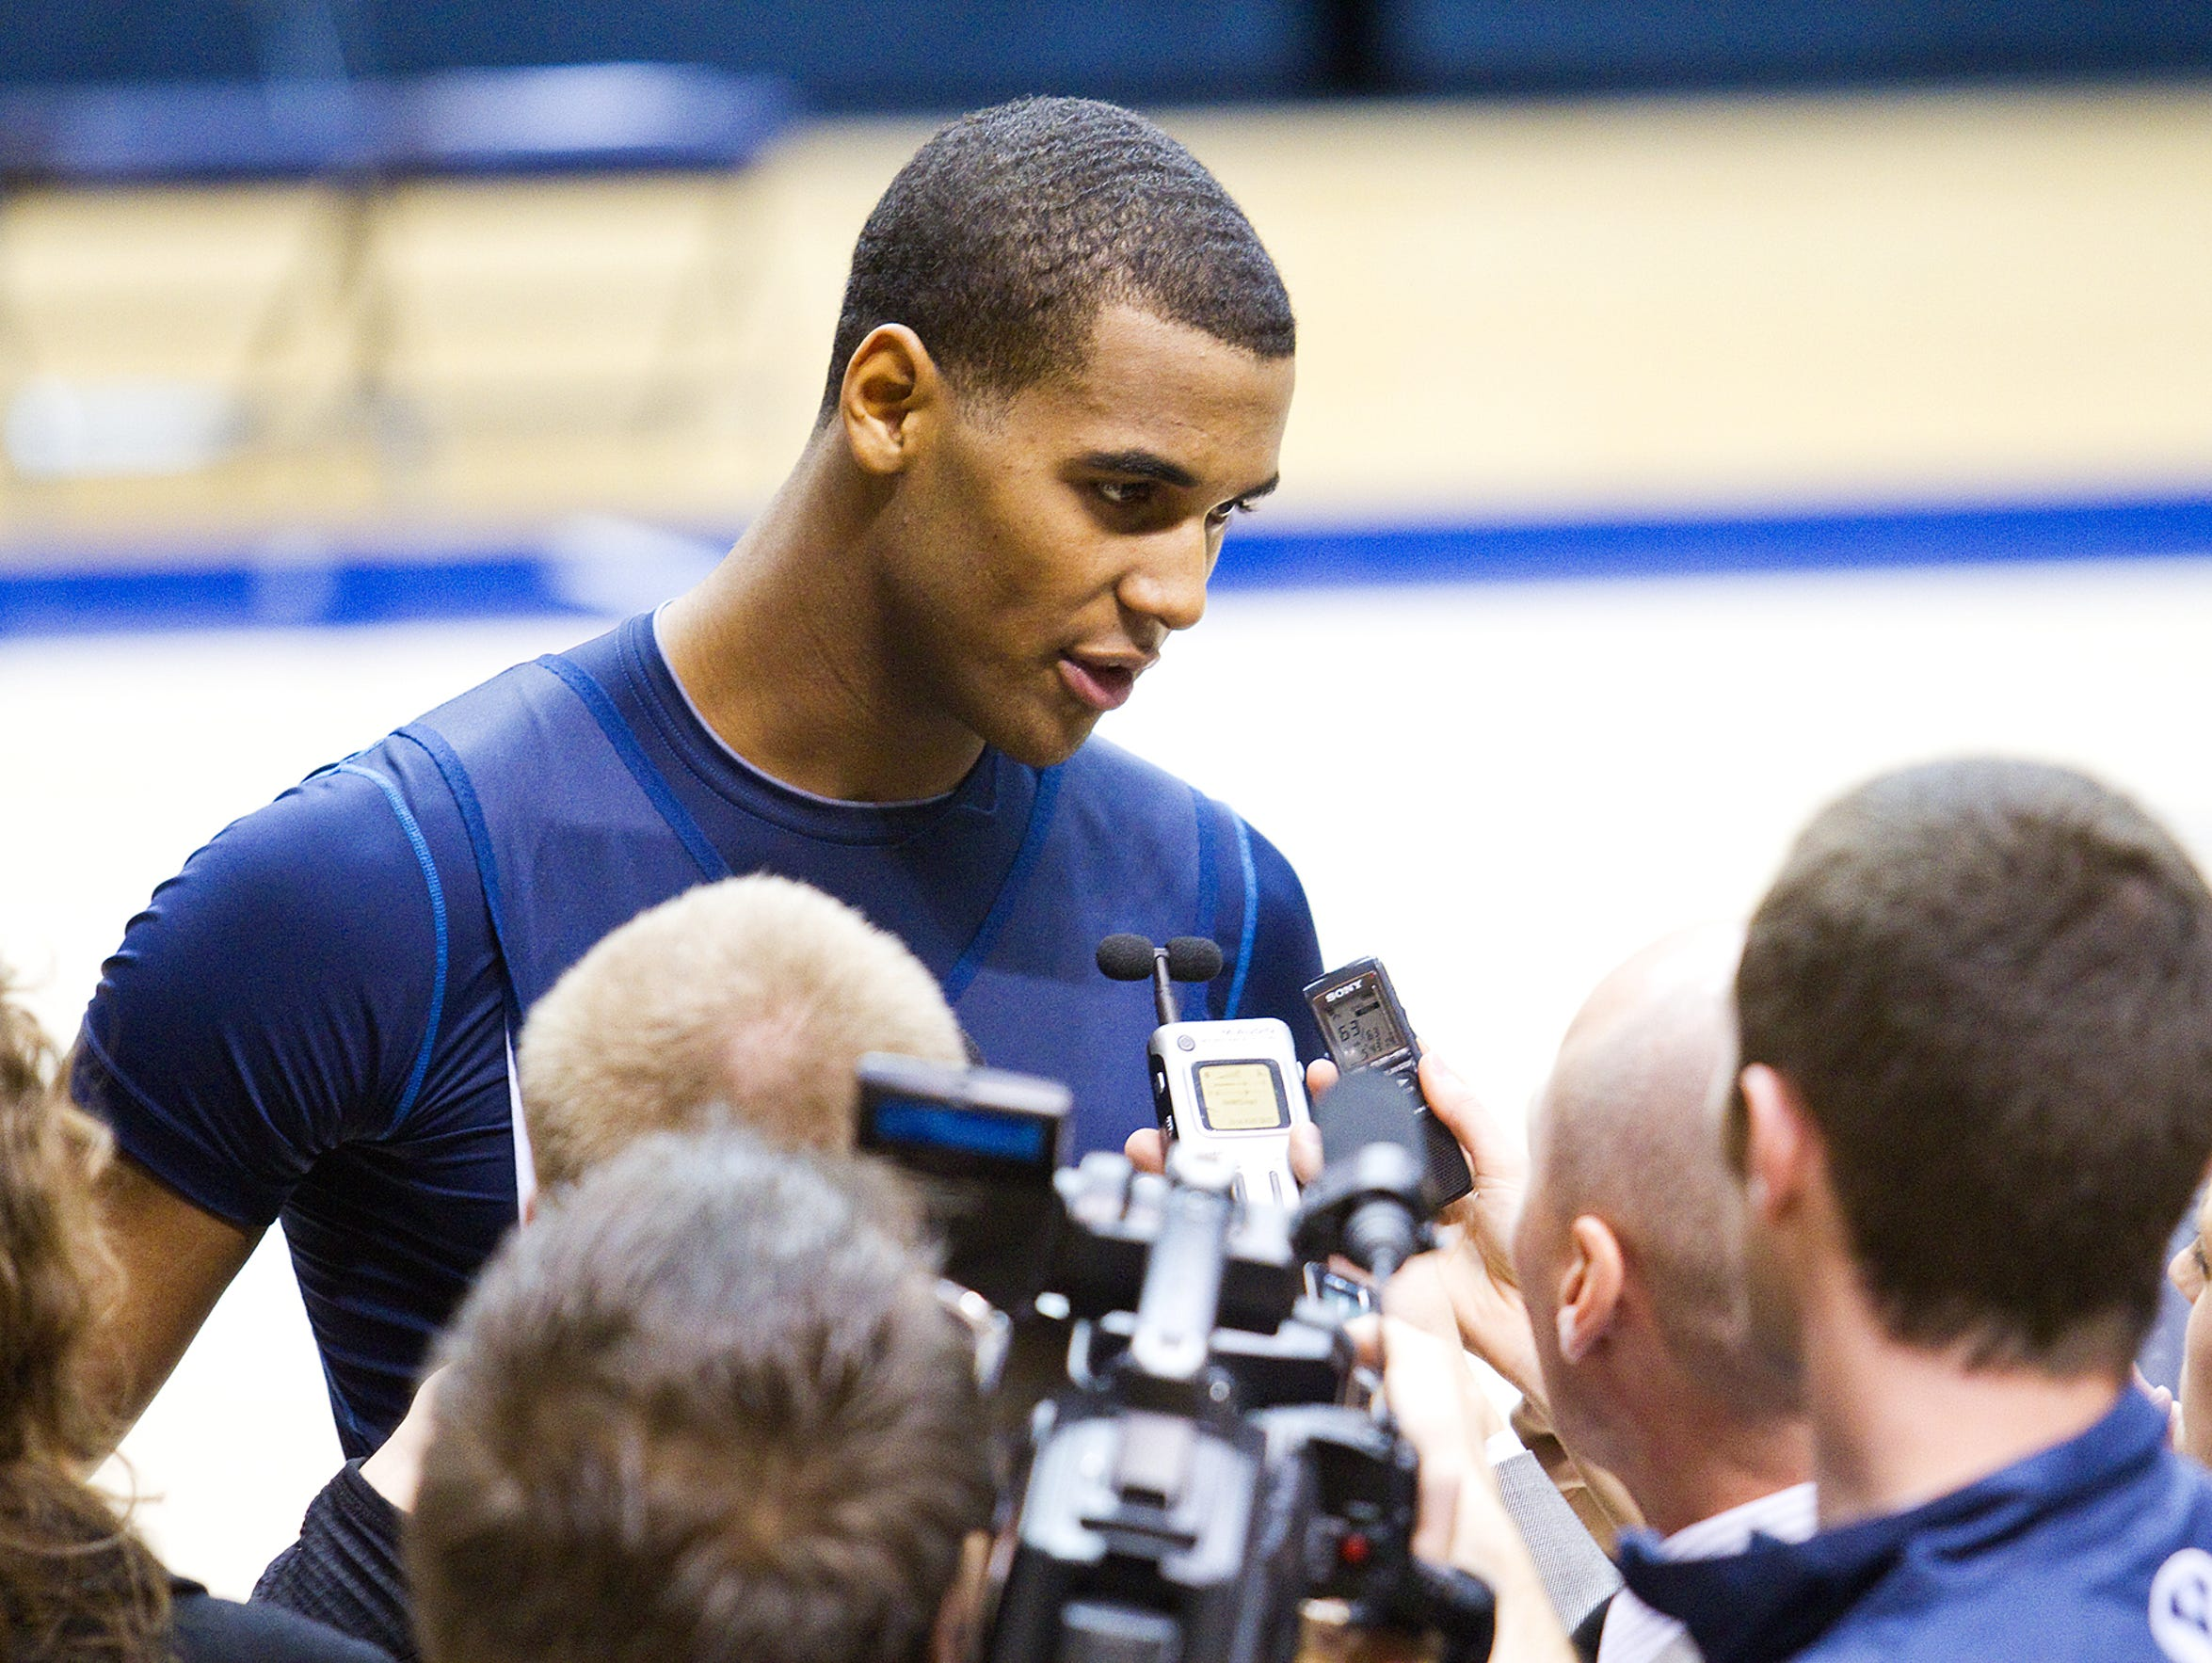 Former BYU hoops player Brandon Davies was suspended